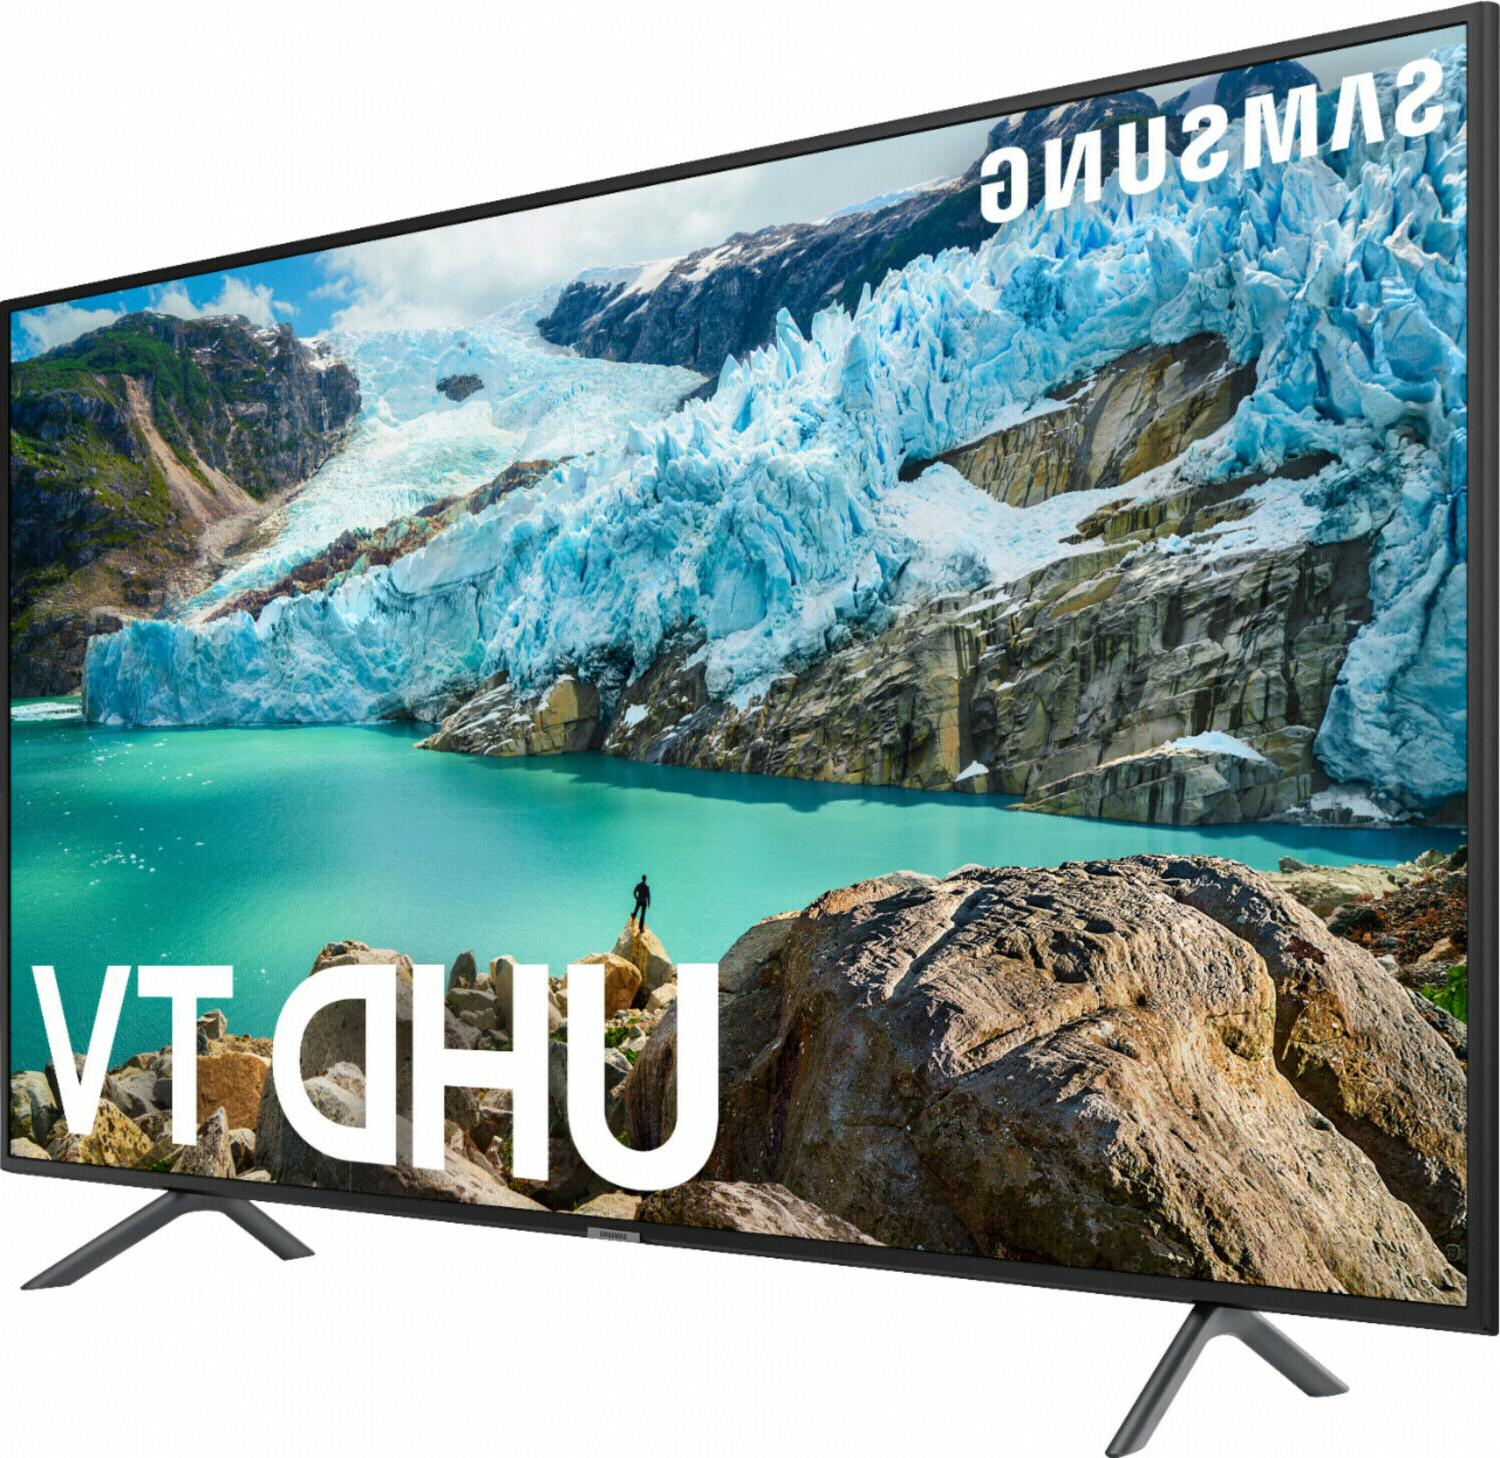 Samsung TV inch 2160p UHD with Built